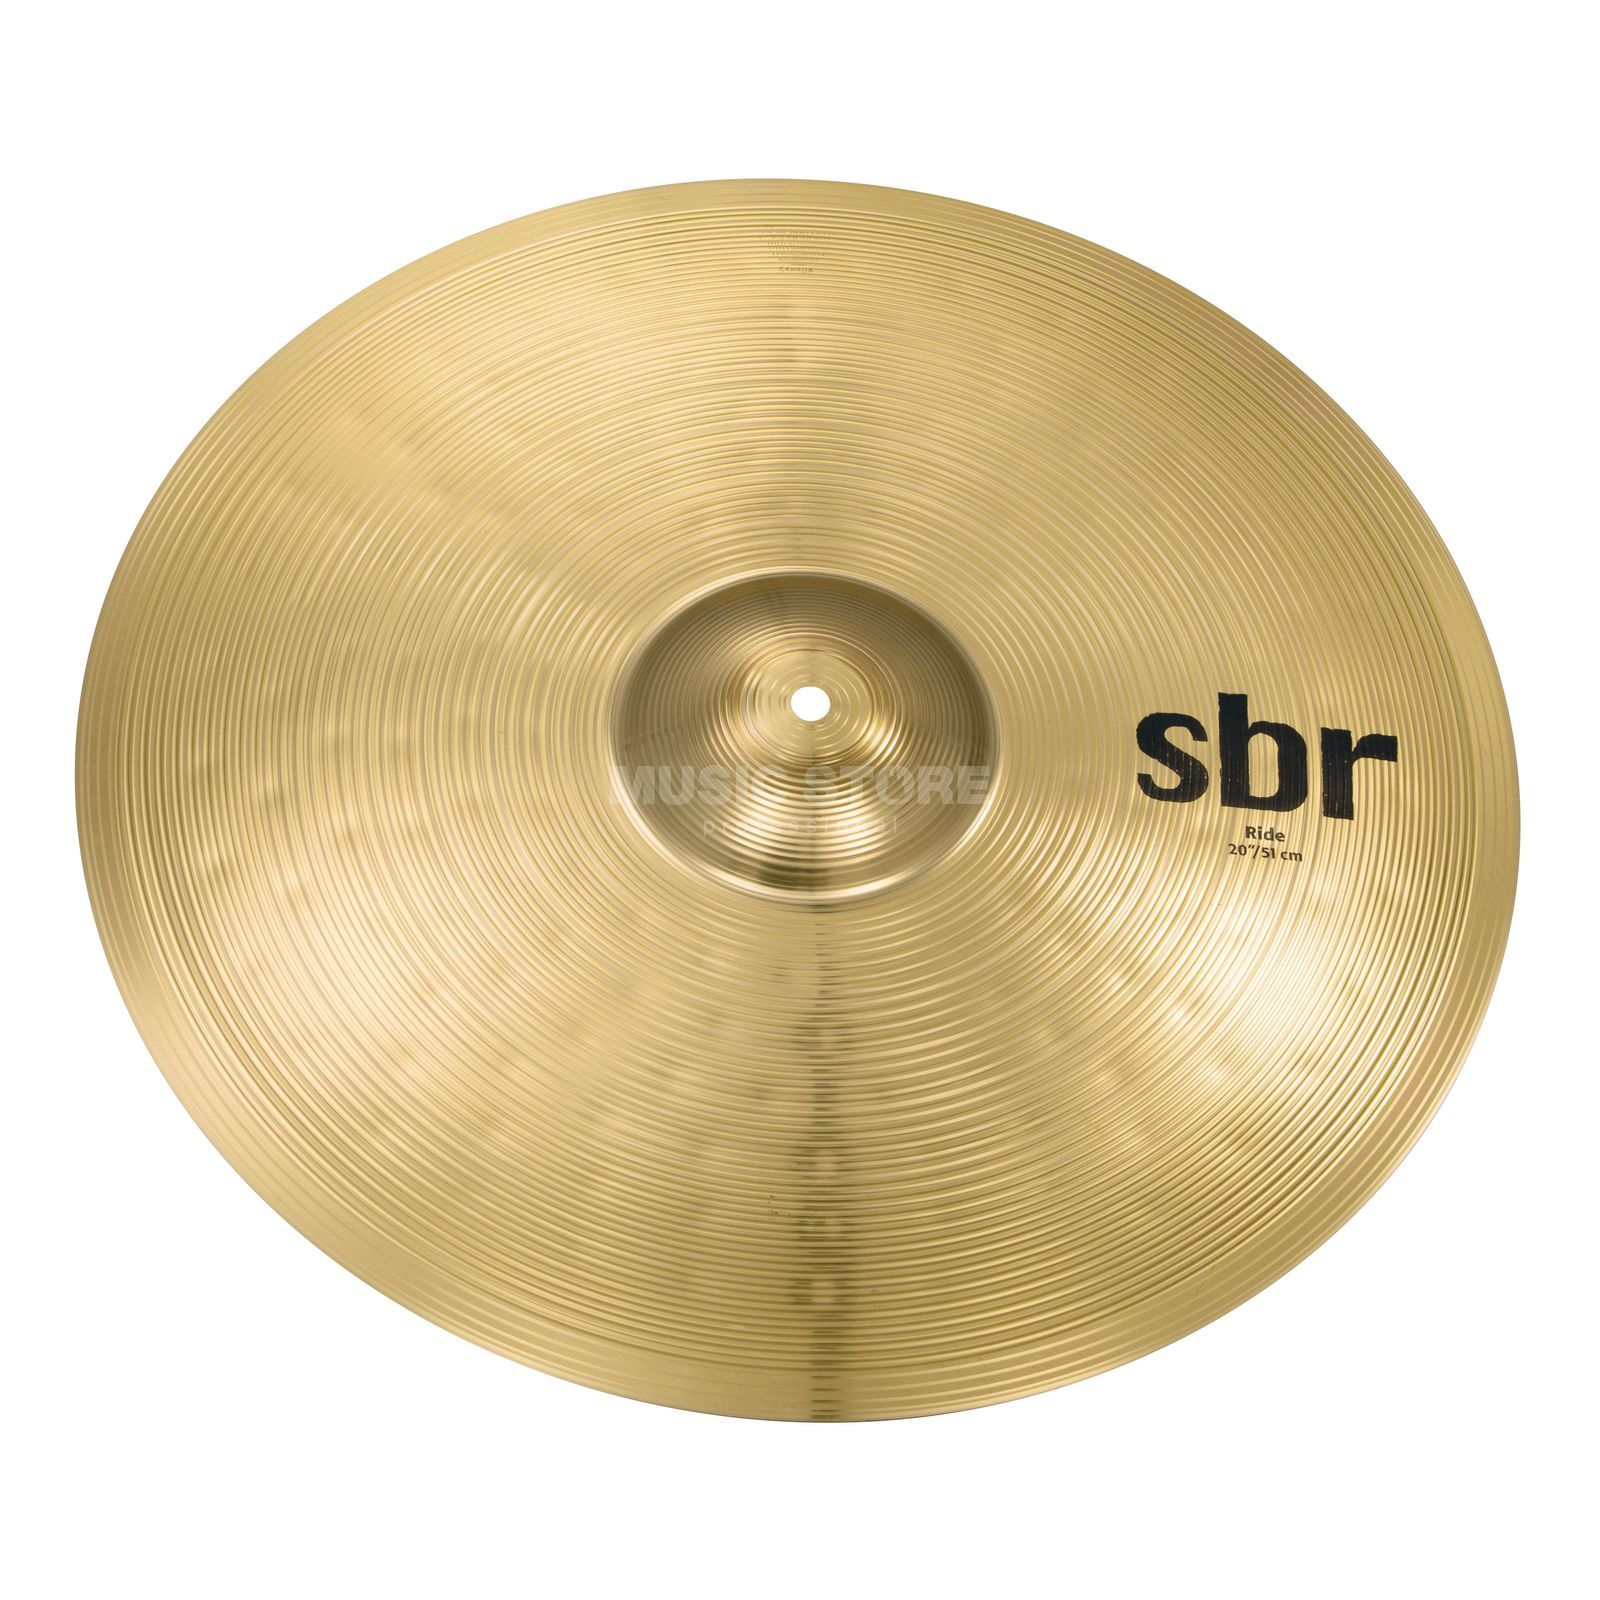 "Sabian sbr Ride 20"", Medium Produktbild"